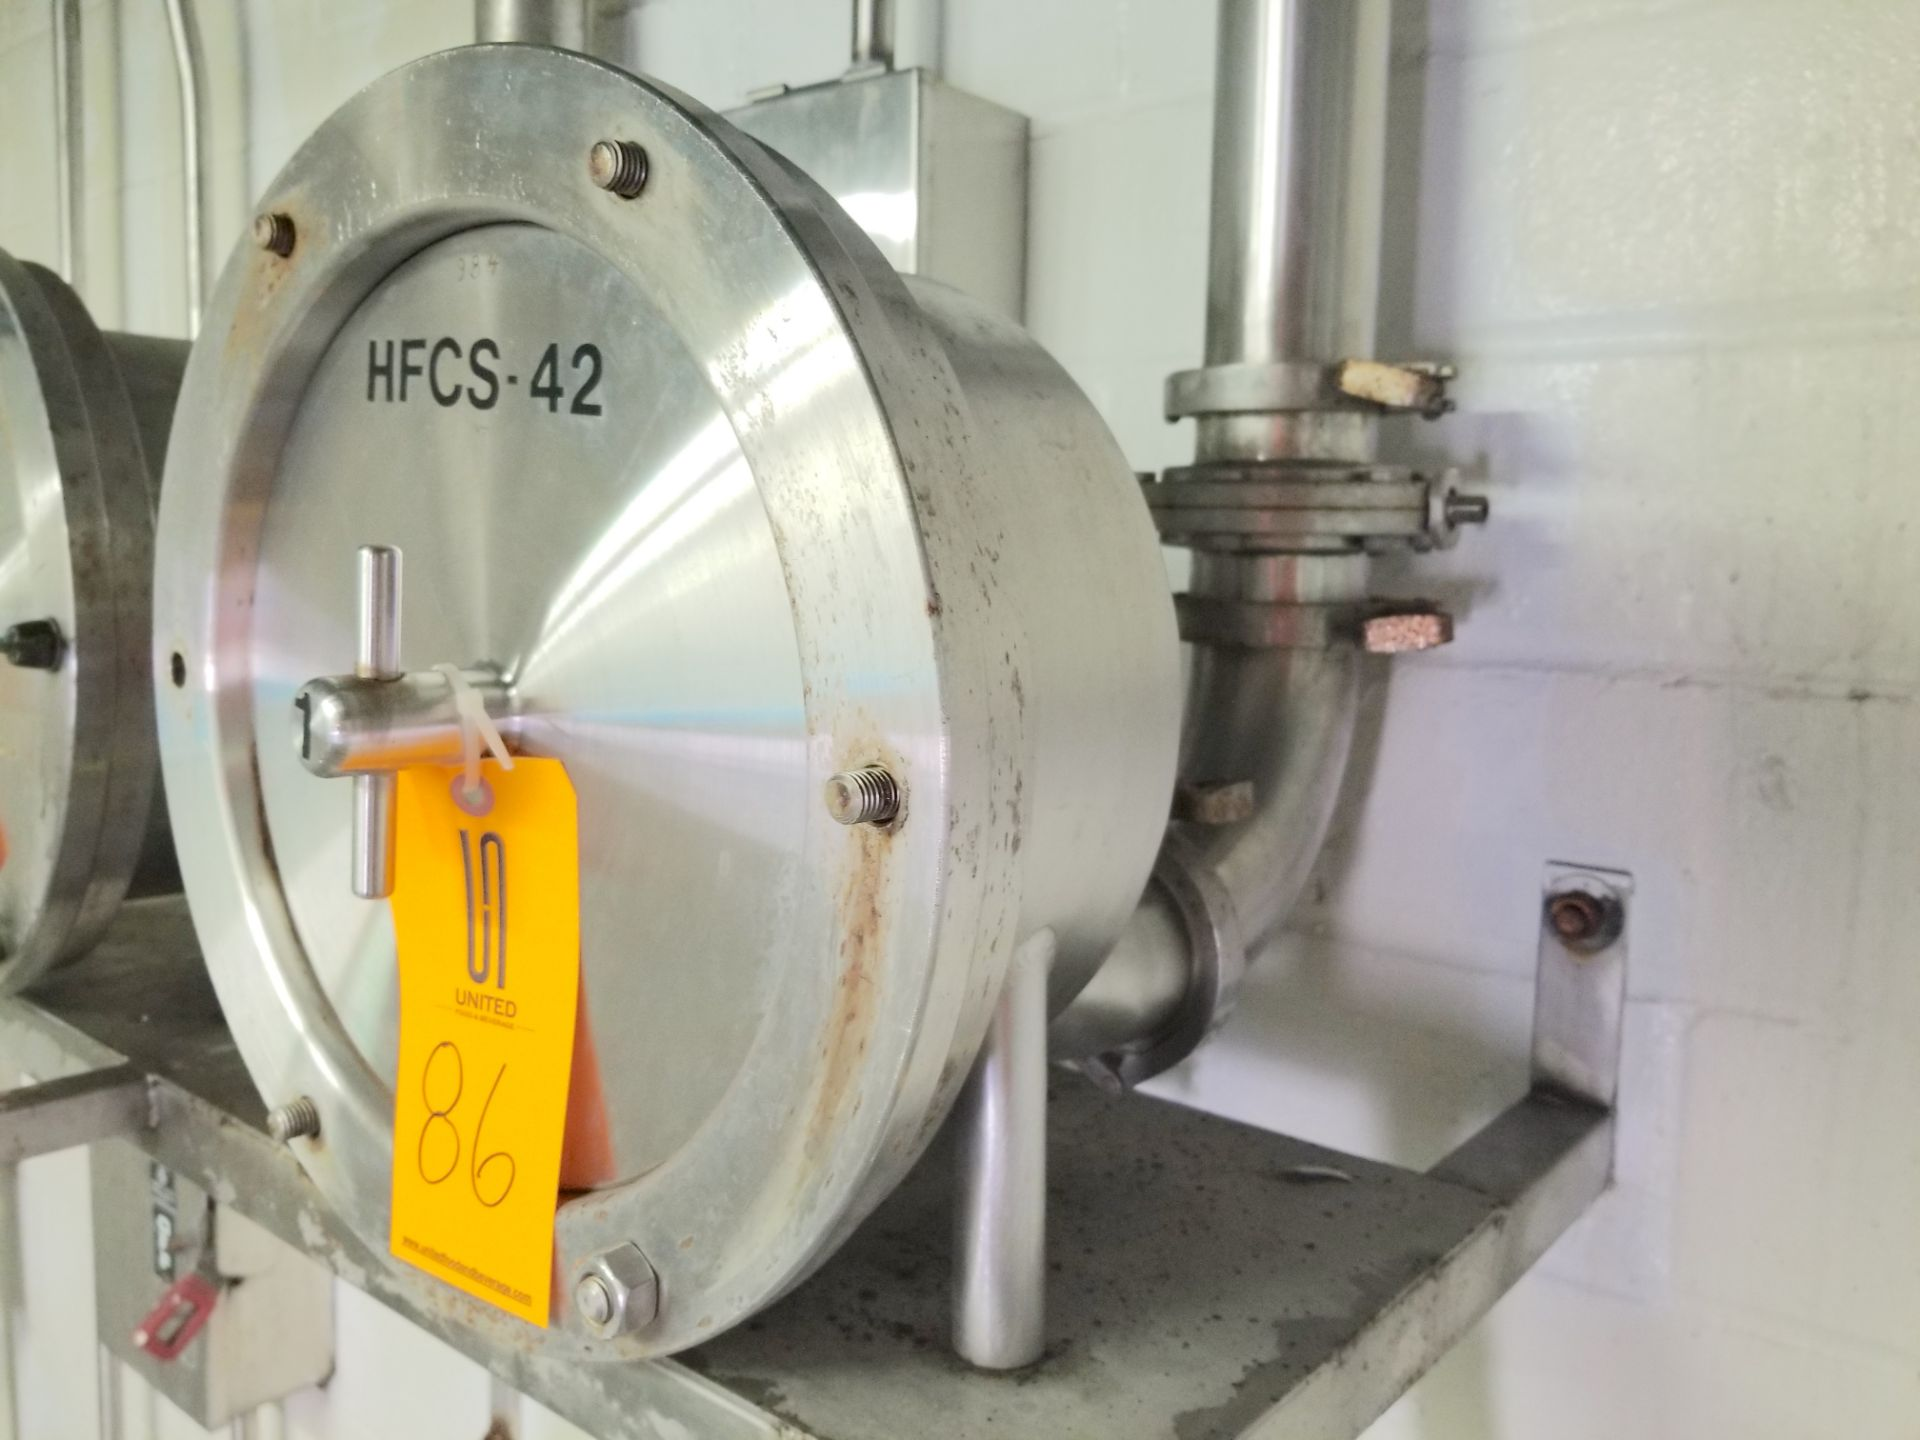 HCFS-42 Corn Syrup Flow Meter 3 Inch Connections - Image 3 of 4